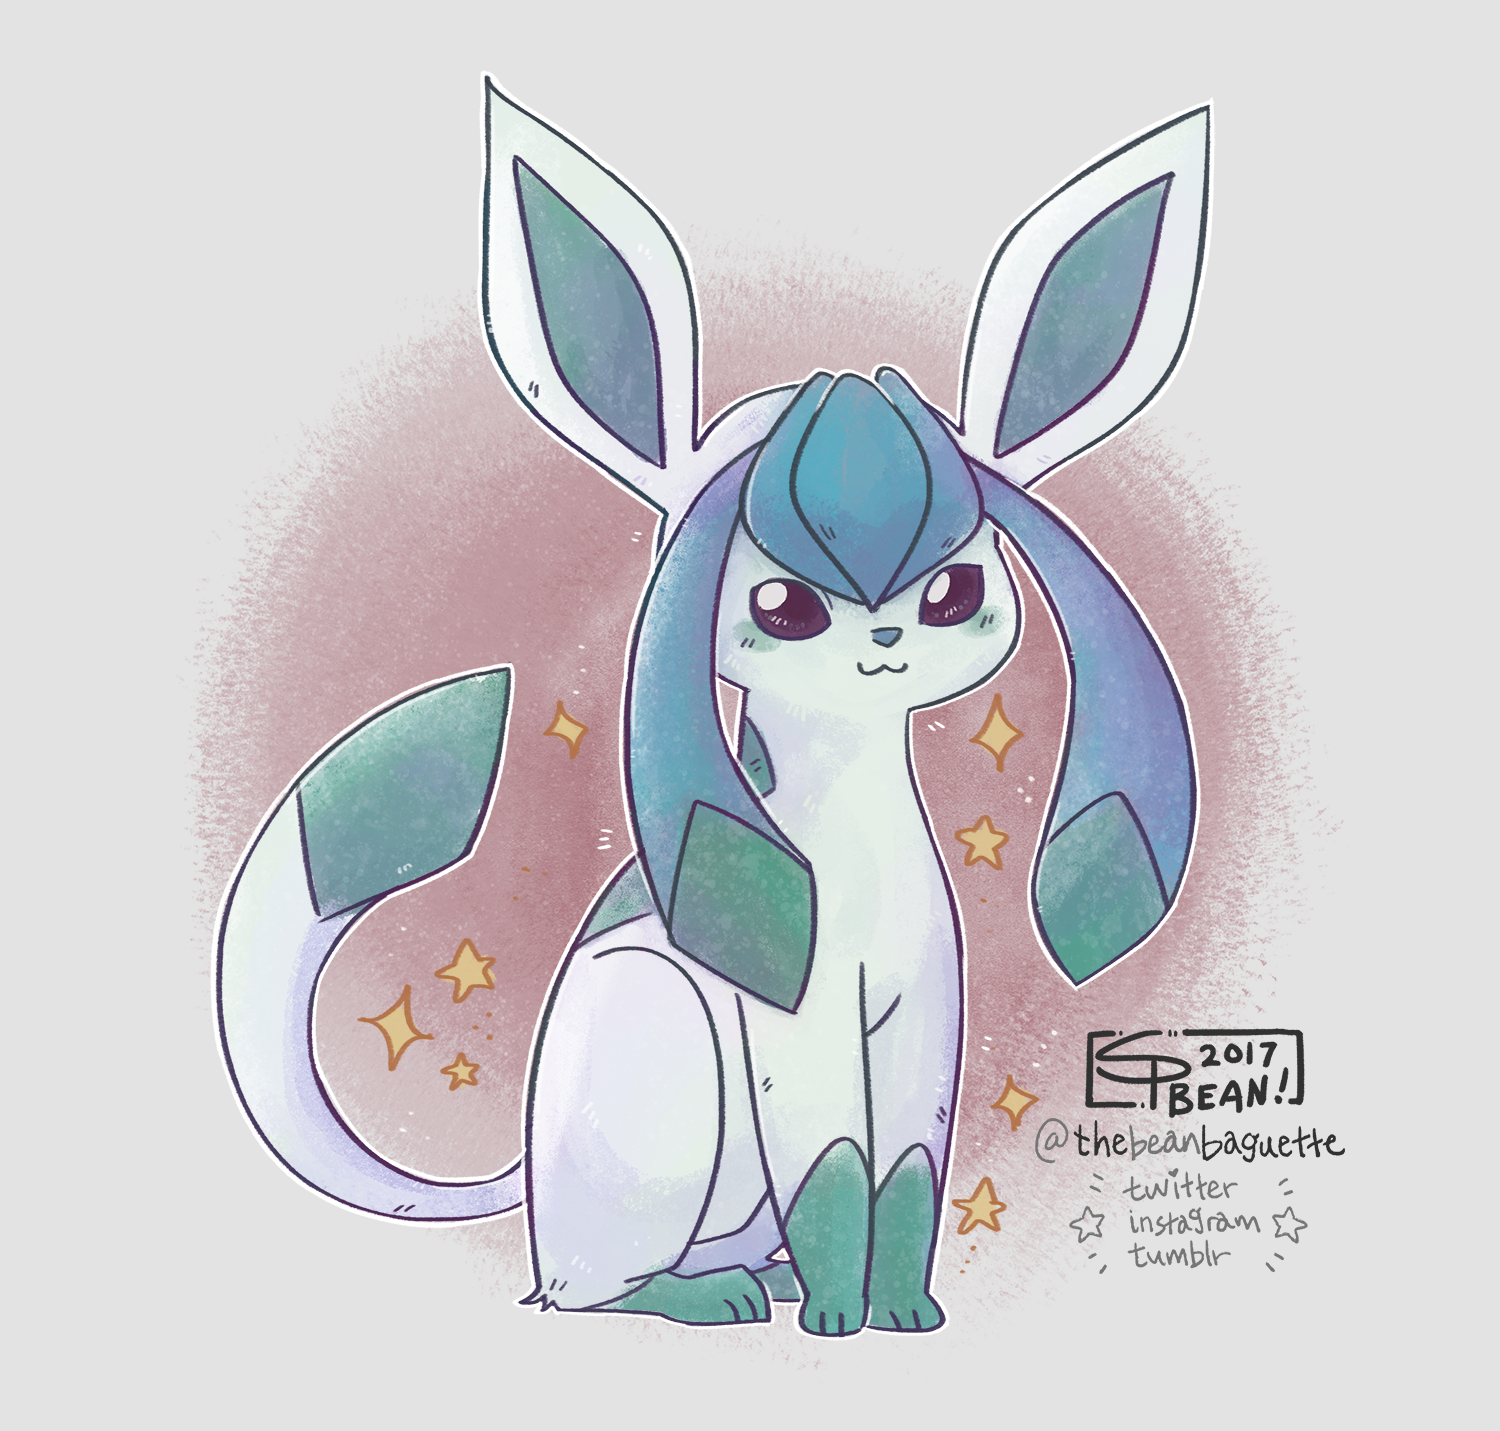 glaceon sticker 2017.png